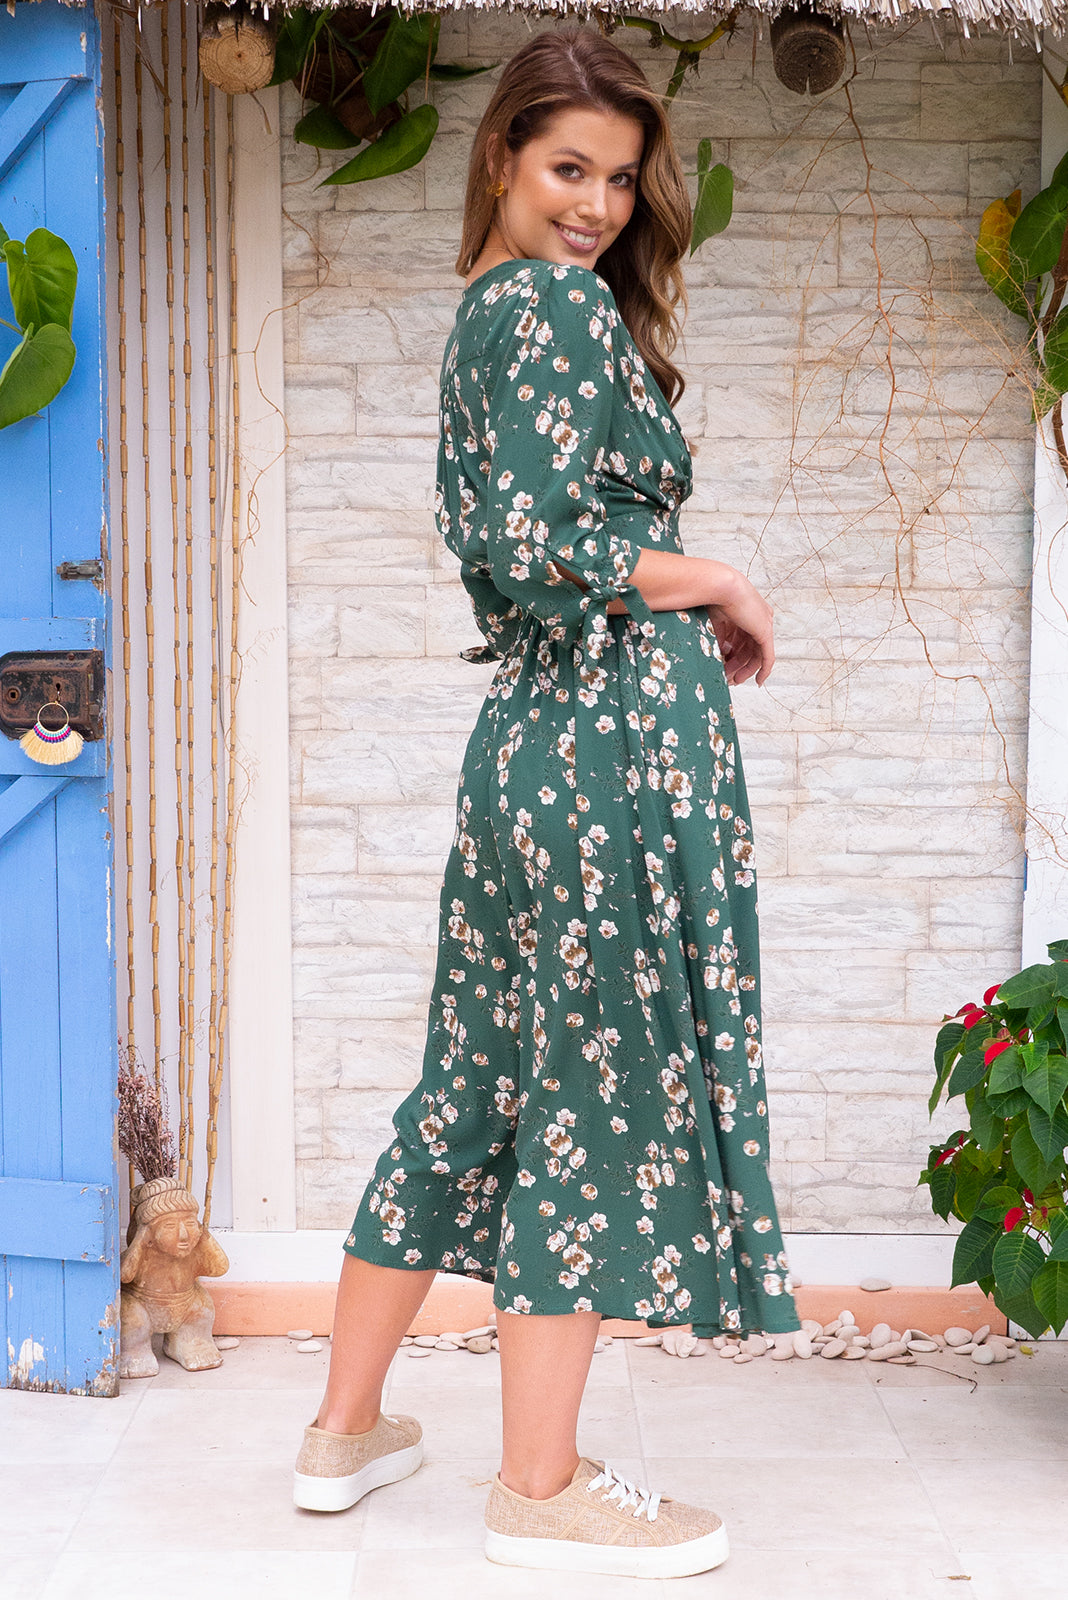 Judith Green seasons Midi dress features a vintage inspired fitted basque waist, elasticated waist with a midi sleeve, deep v neck and fully functional button front in a soft woven rayon fabric with a bohemian romantic floral bohemian print on a soft forest green base